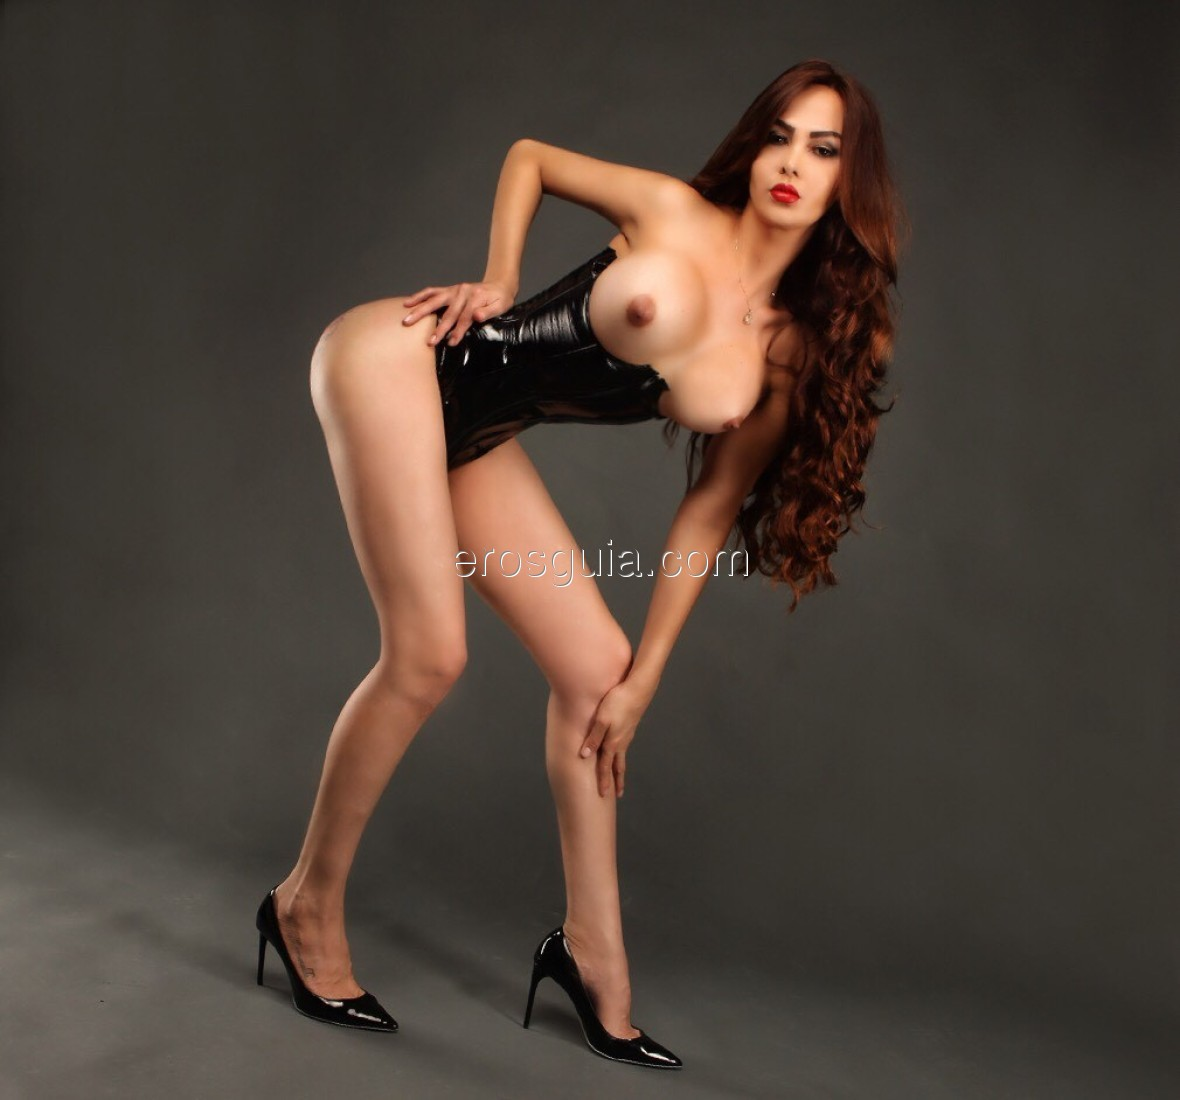 Sensual, affectionate, devoted and accommodating, I have it all love,...